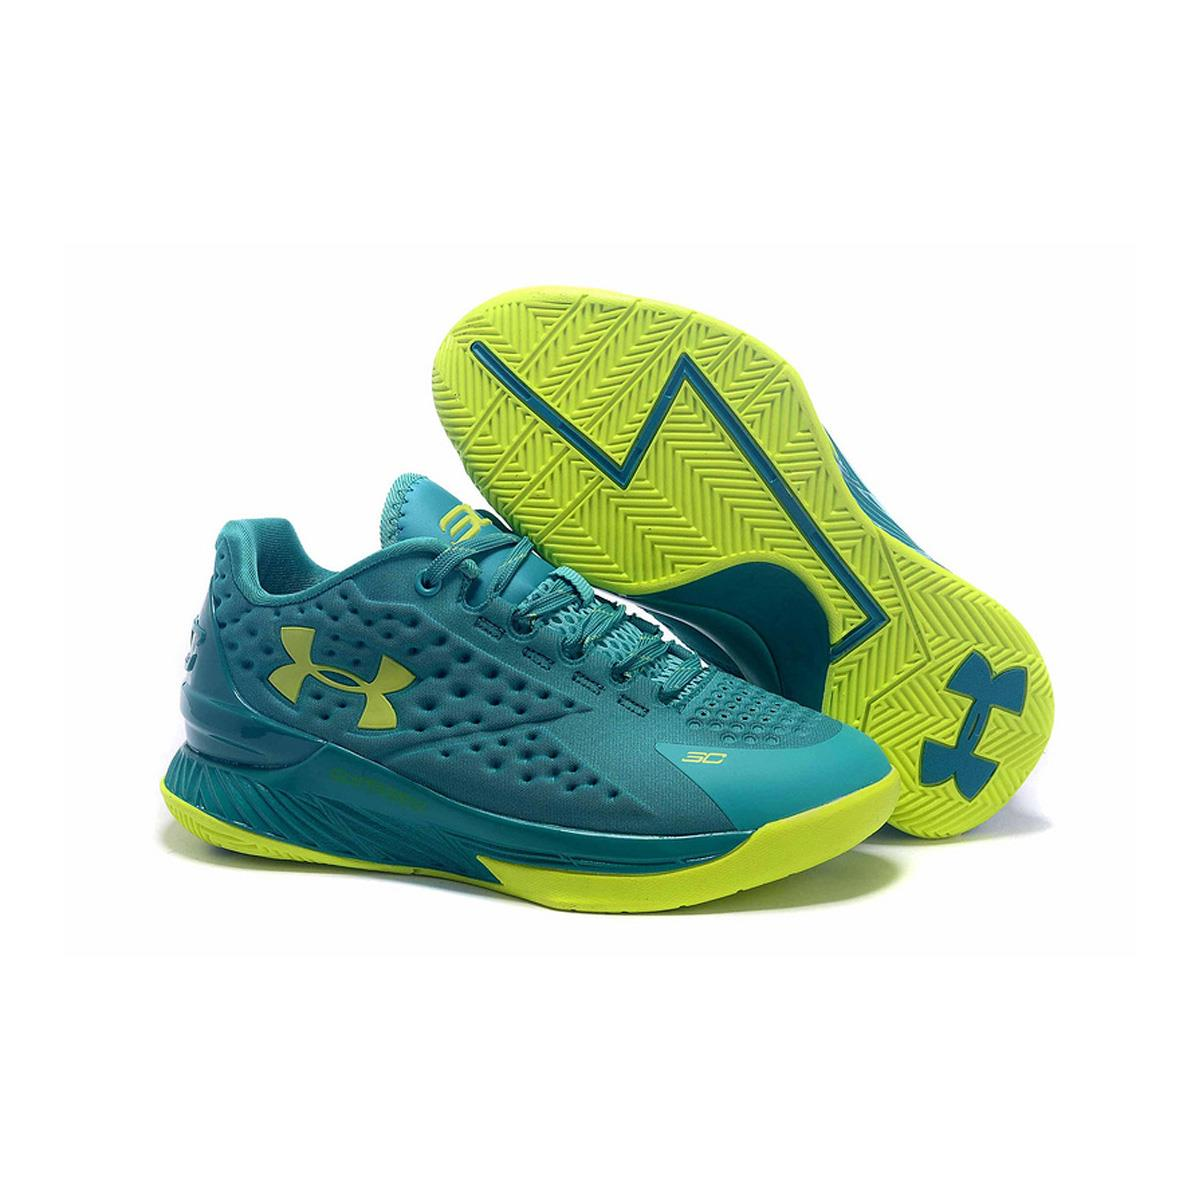 633f4ec85c8 Tênis Under Armour Curry Low 1 Masculino